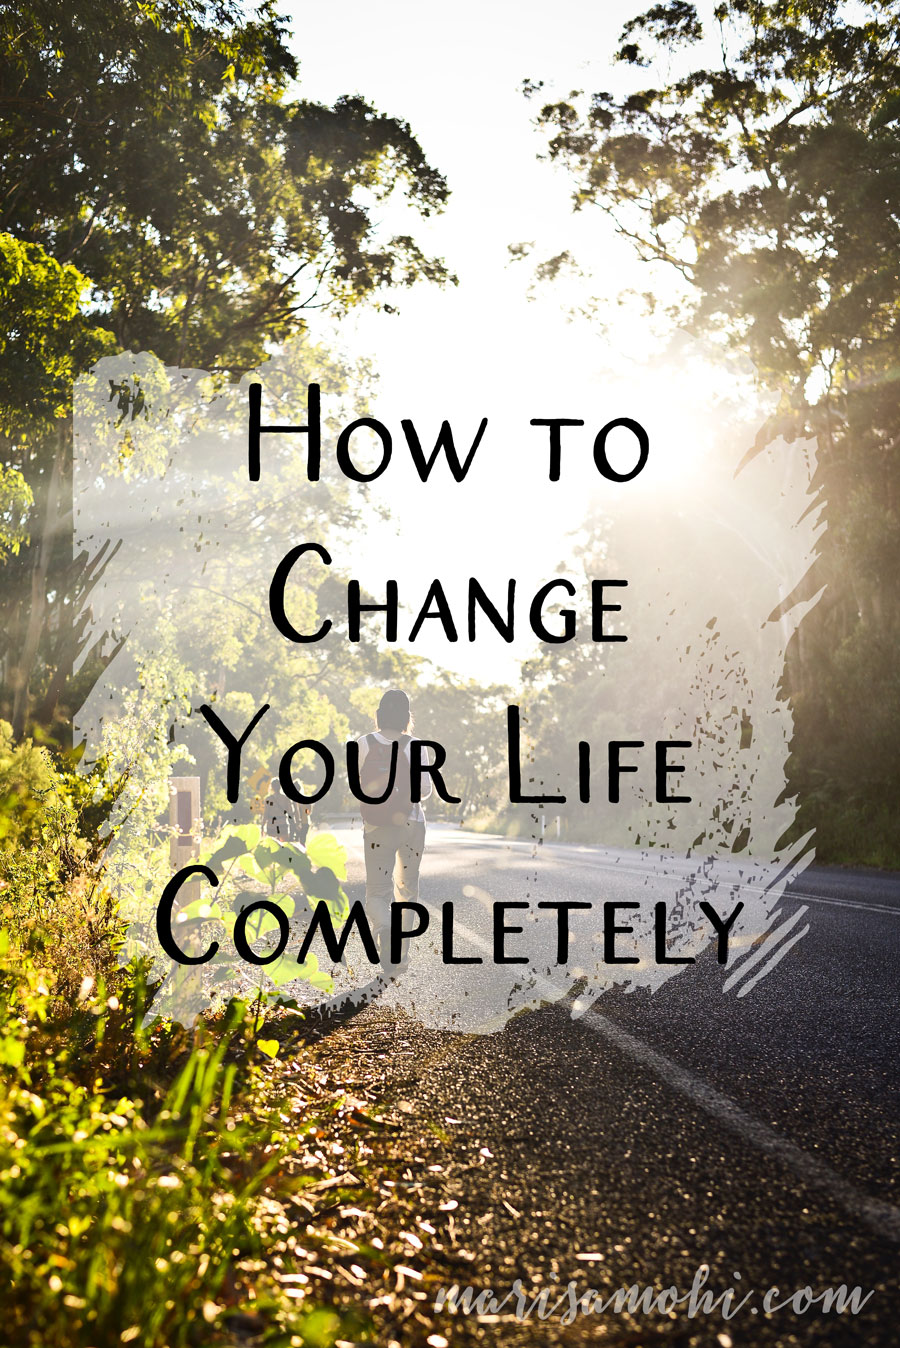 How to Change Your Life Completely